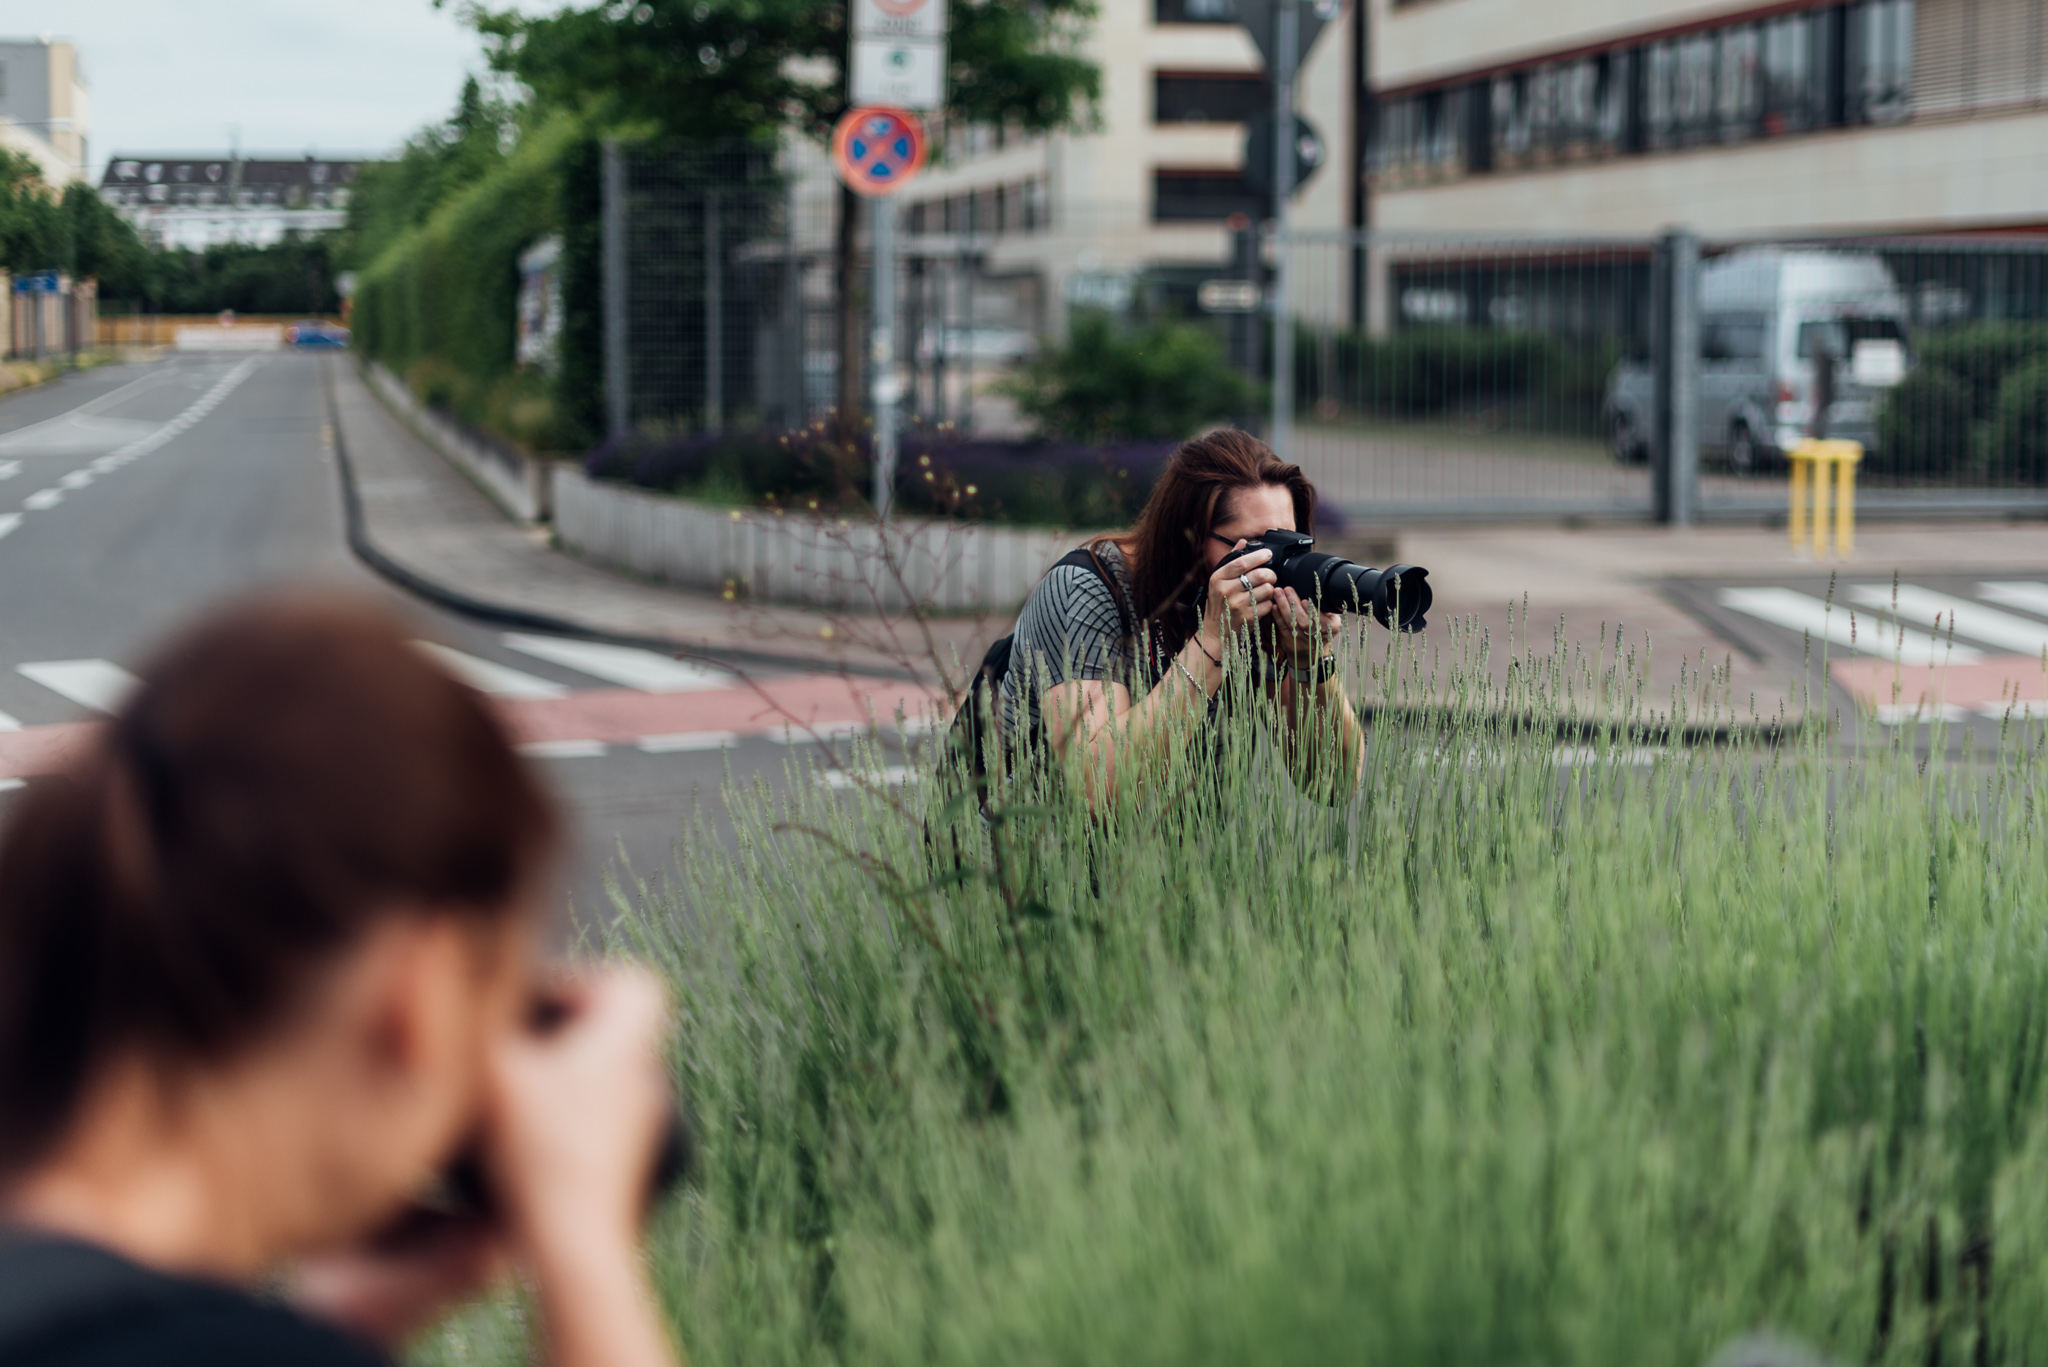 2019-06-09 27. Photowalk Deutz Kalk